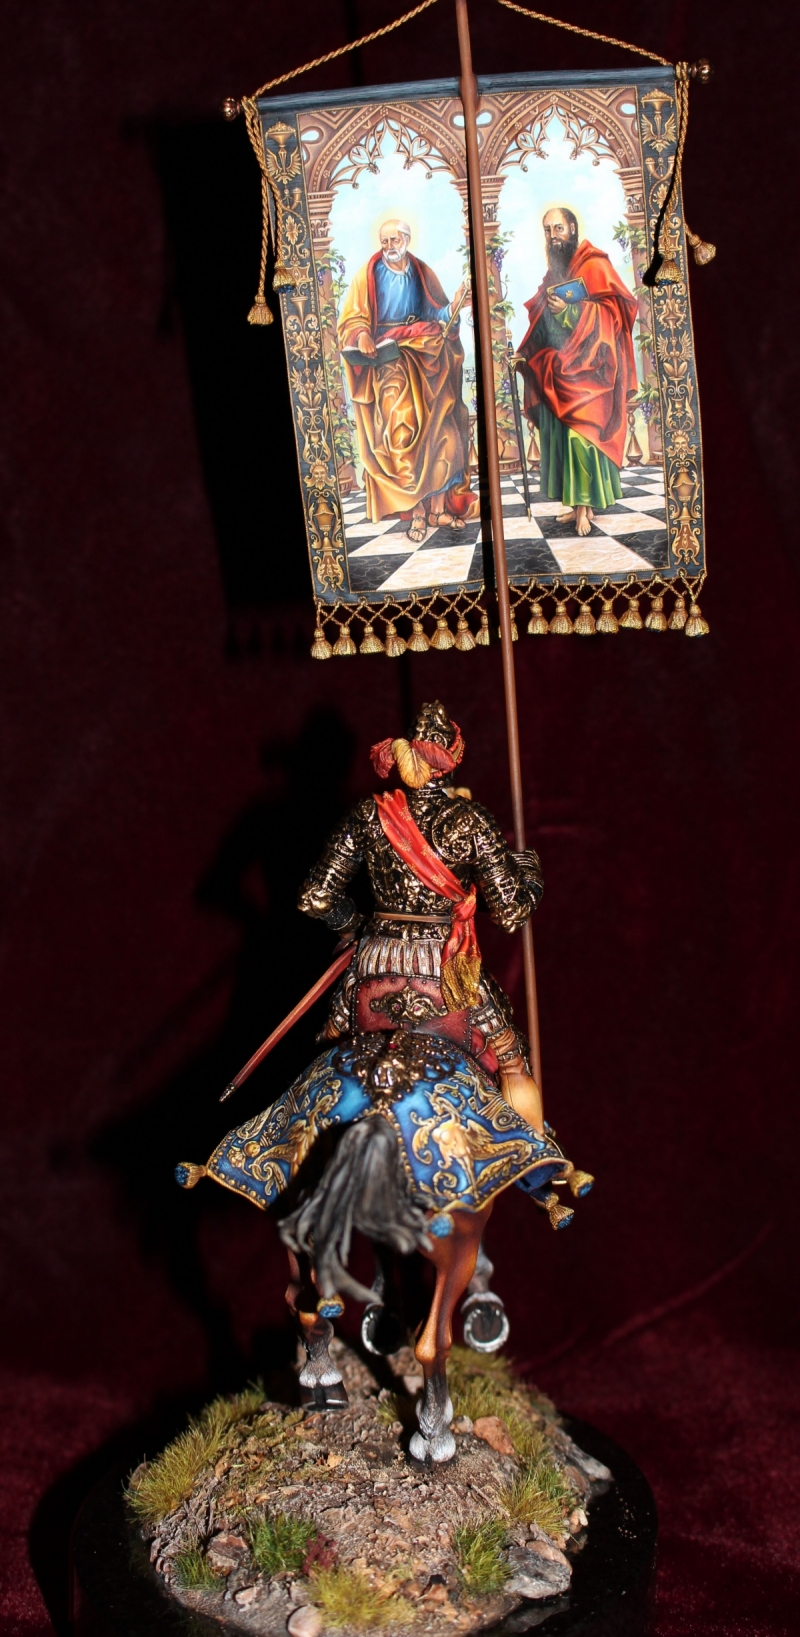 Knight in parade armor with banner